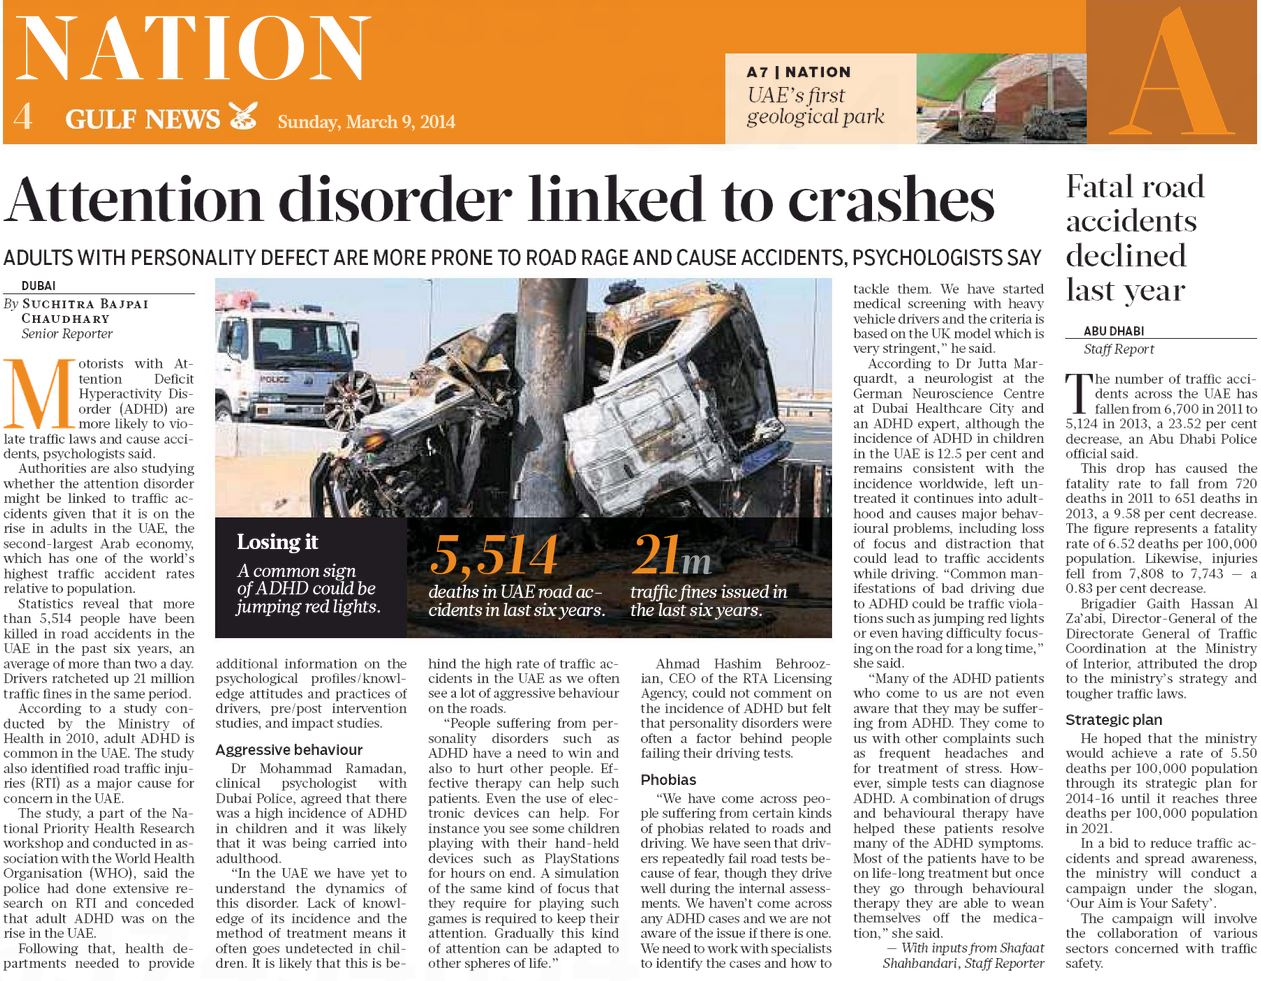 Gulf News: ADHD blamed for bad driving in the UAE